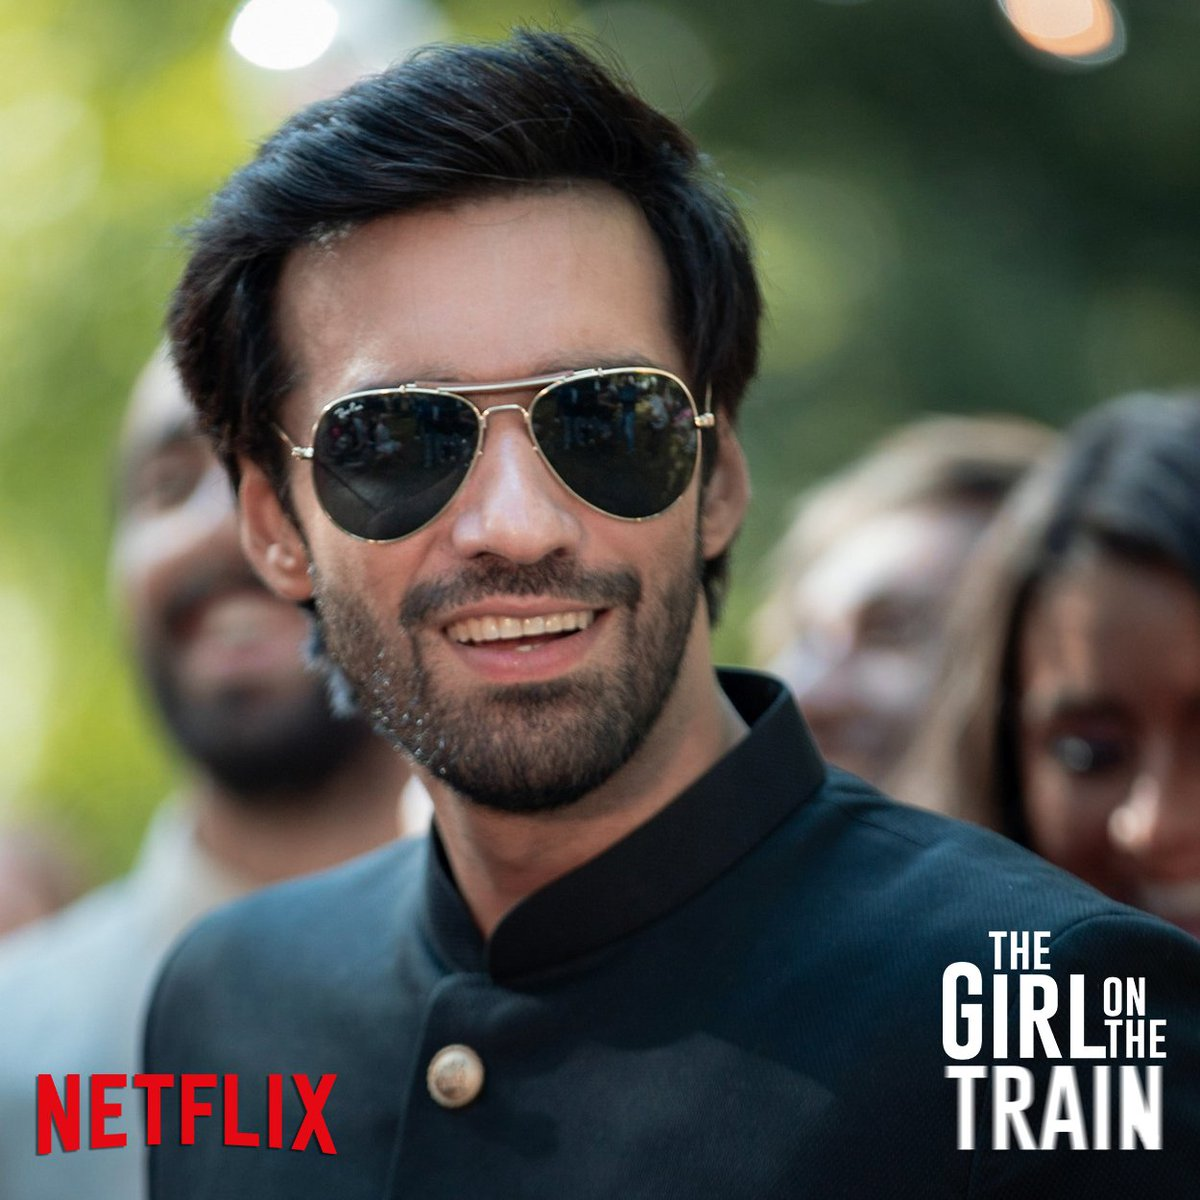 One murder. One suspect. One mystery. This is a train that you don't want to miss. #TGOTT premieres 26th Feb, only on Netflix.  @avinashtiw85 @ParineetiChopra @aditiraohydari @IamKirtiKulhari @tota_rc @SHAMAUN @ribhudasgupta @Shibasishsarkar @amblin @ZeeMusicCompany @NetflixIndia